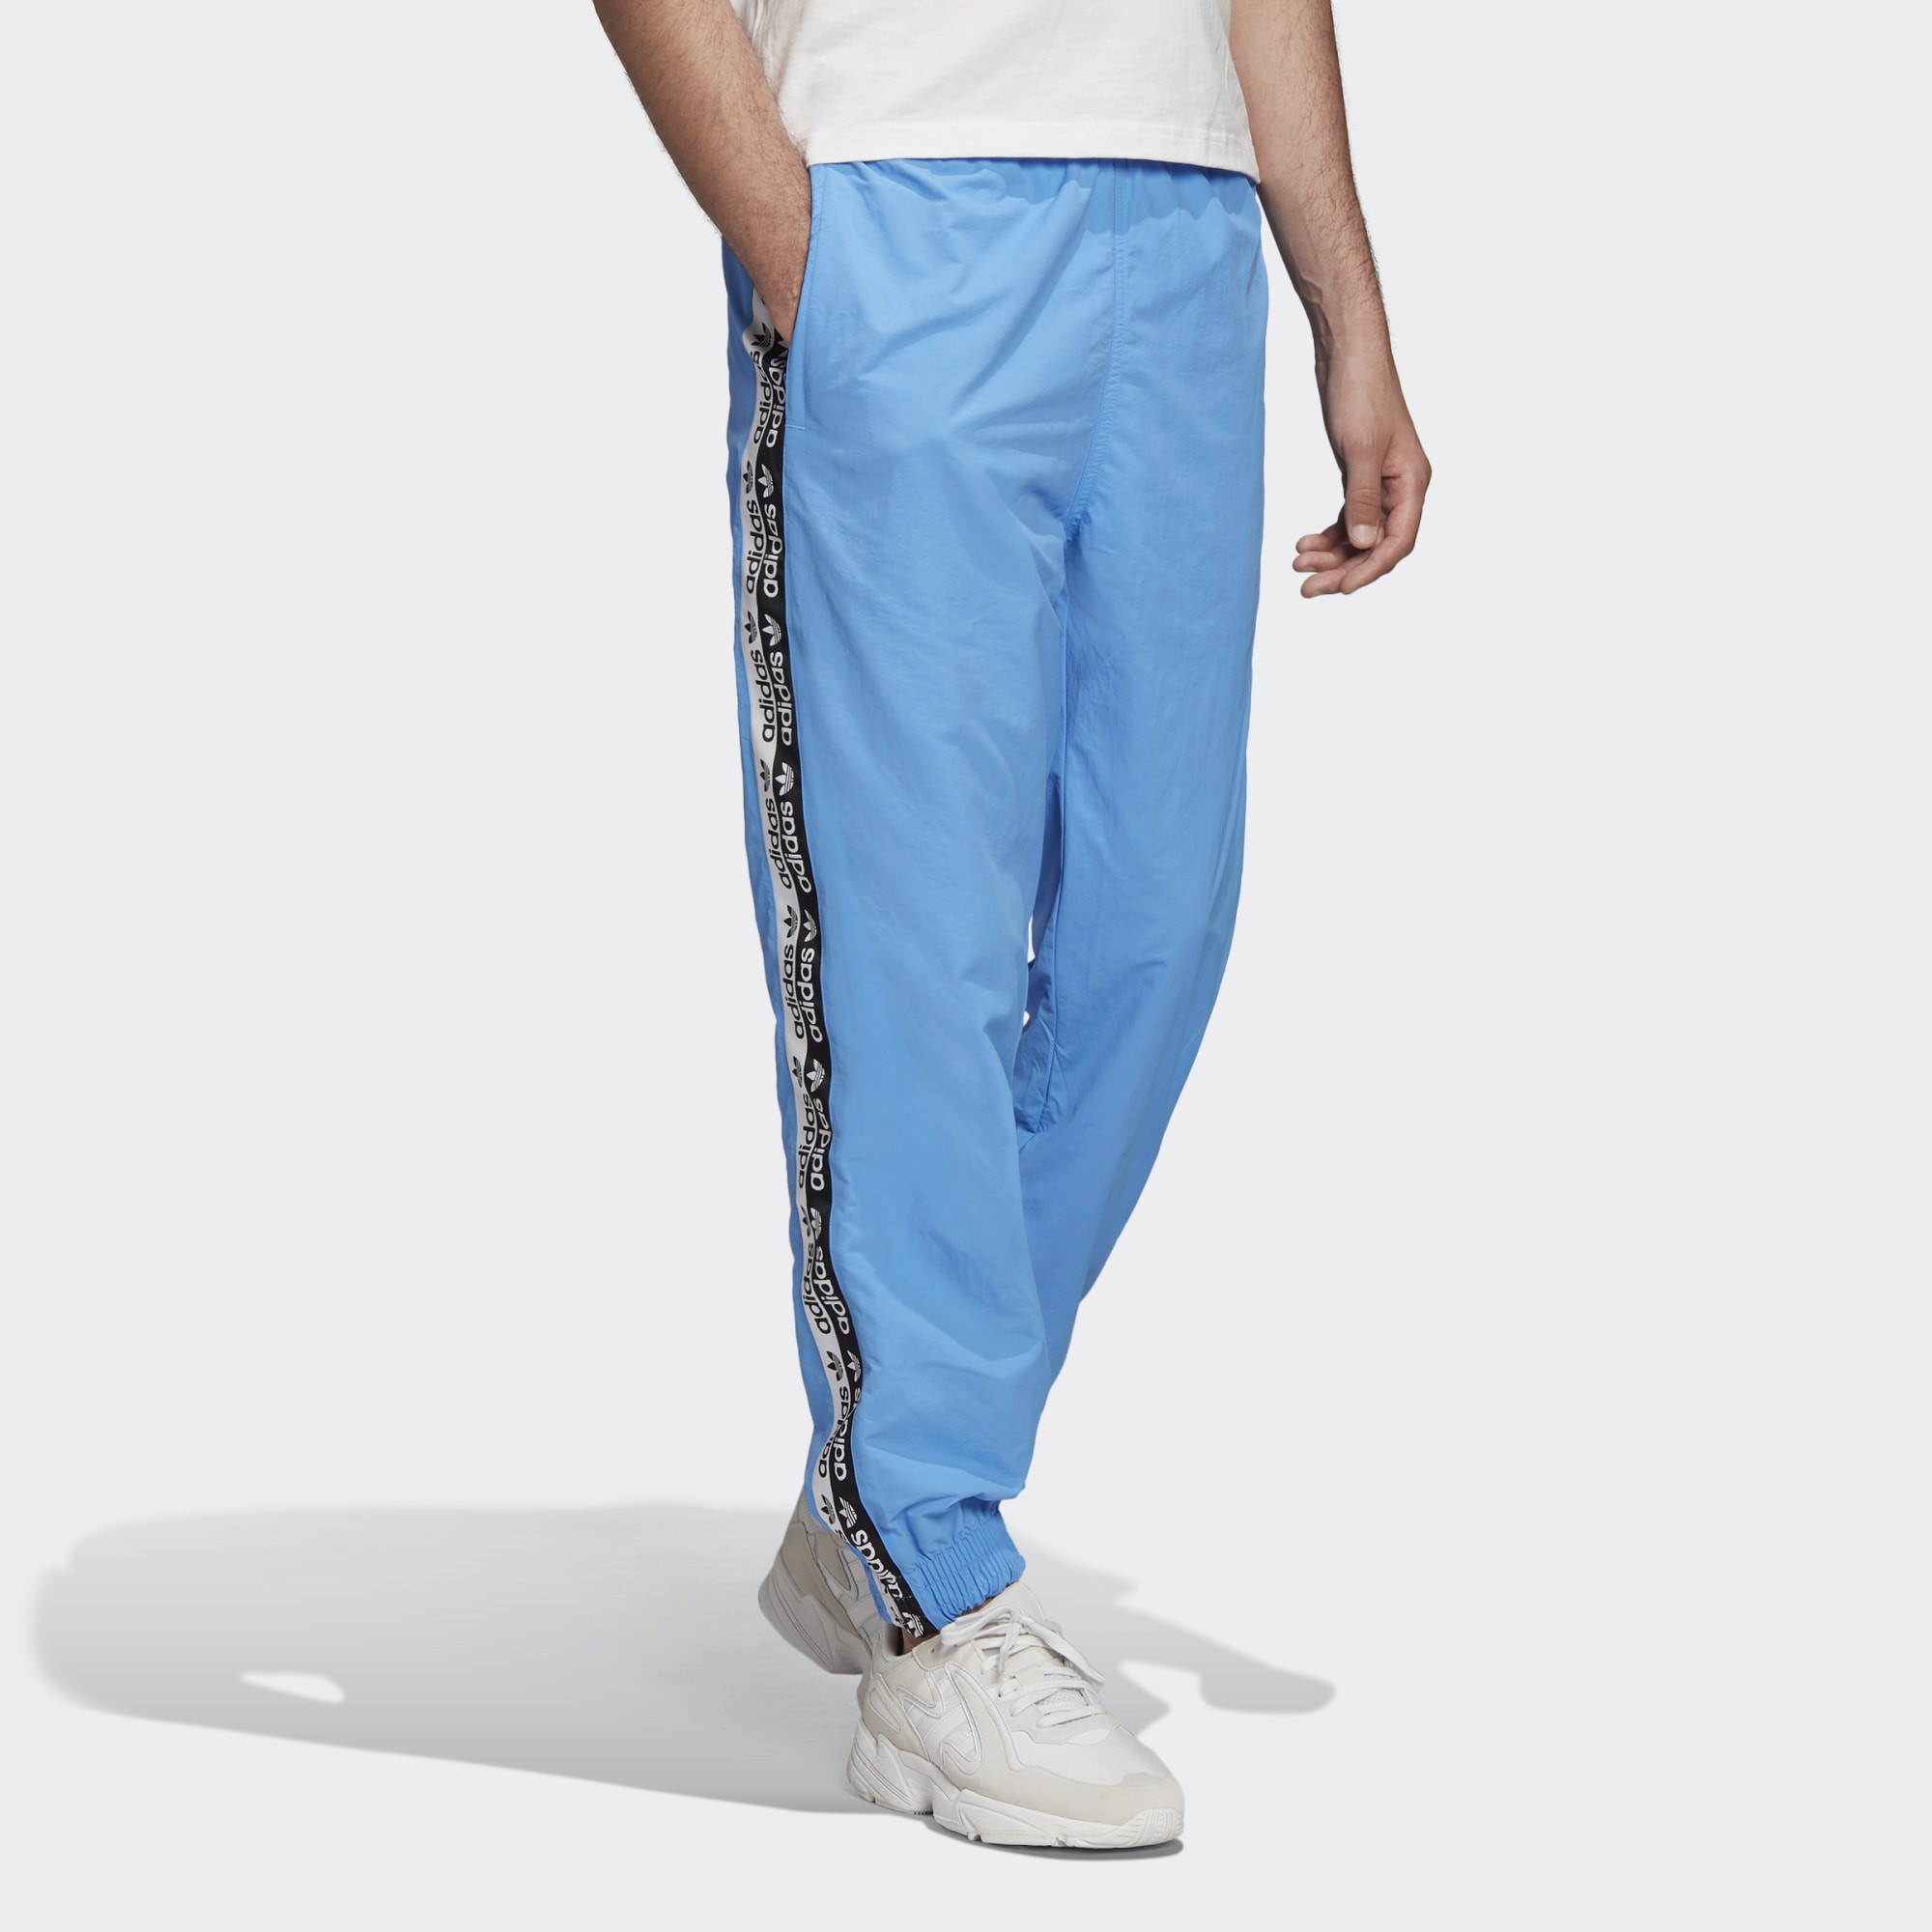 adidas R.Y.V. Wind Pants - Real Blue